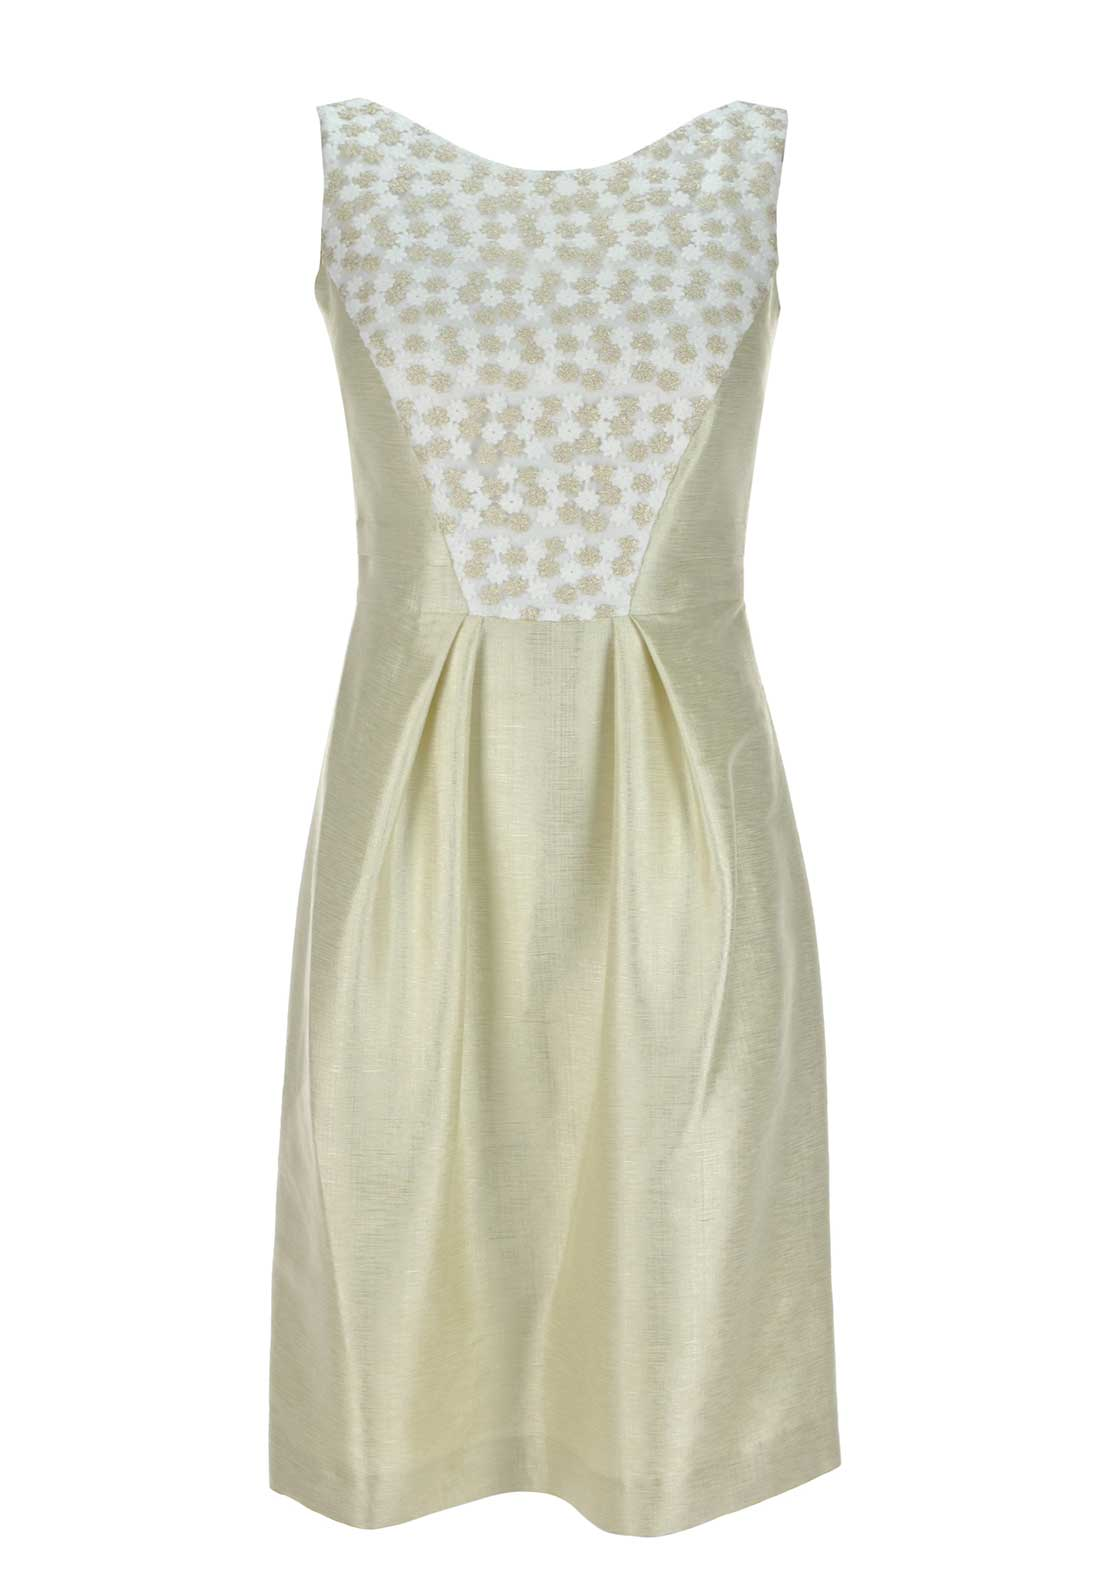 Laura Bernal Pencil Dress, Cream & Gold